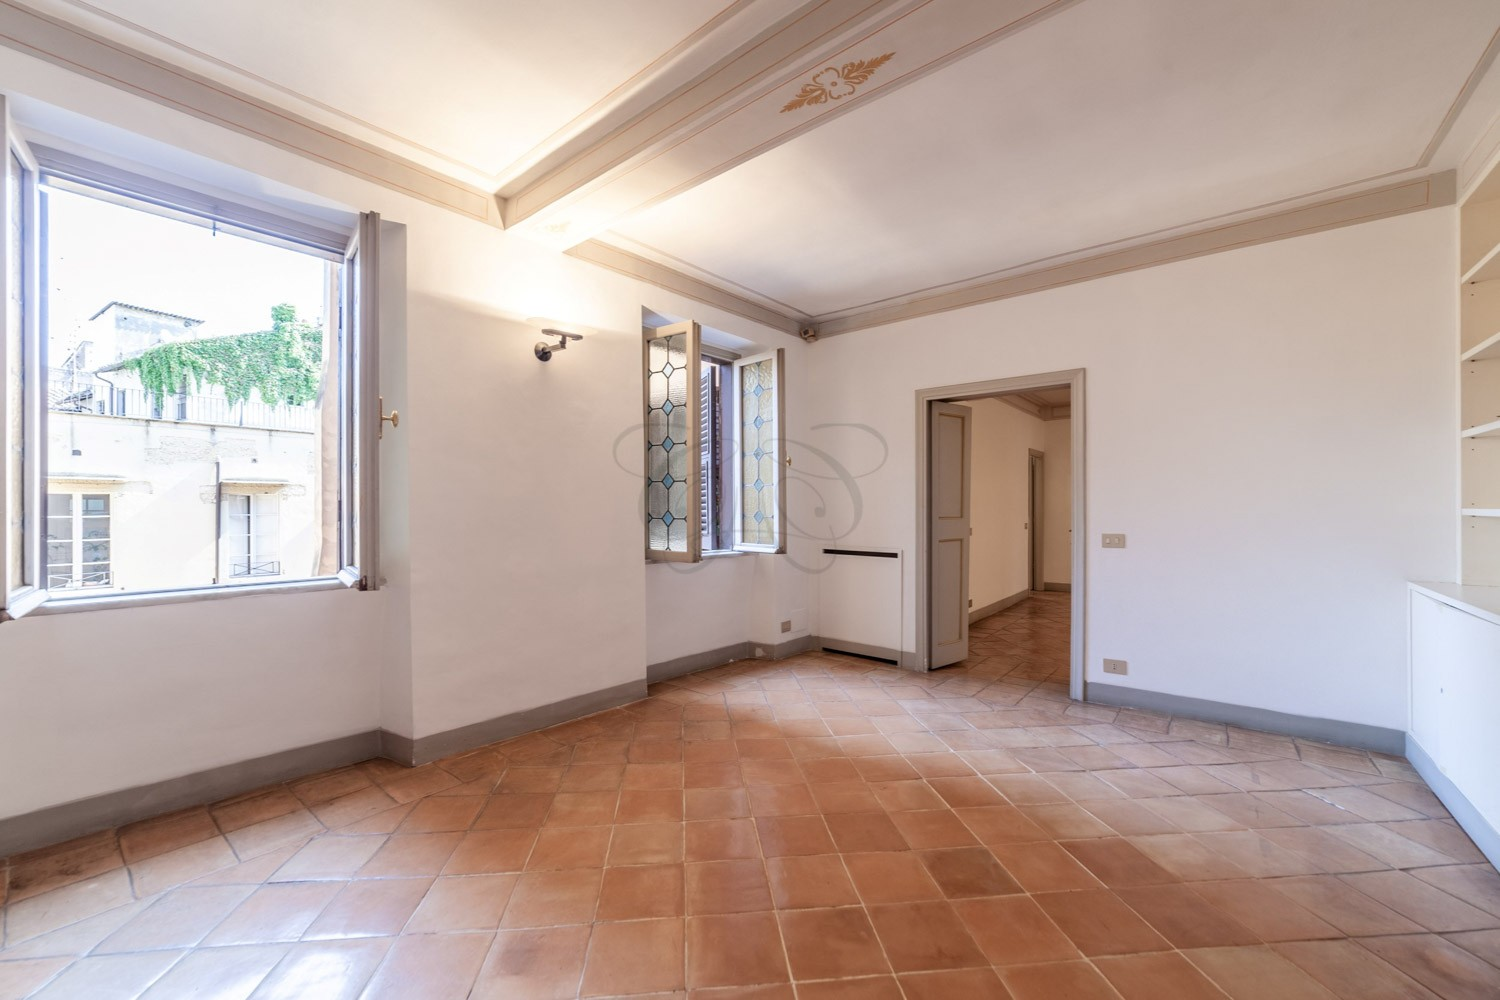 Luxury Real Estate in Rome: Apartment for Sale in a Noble Palace of via Giulia